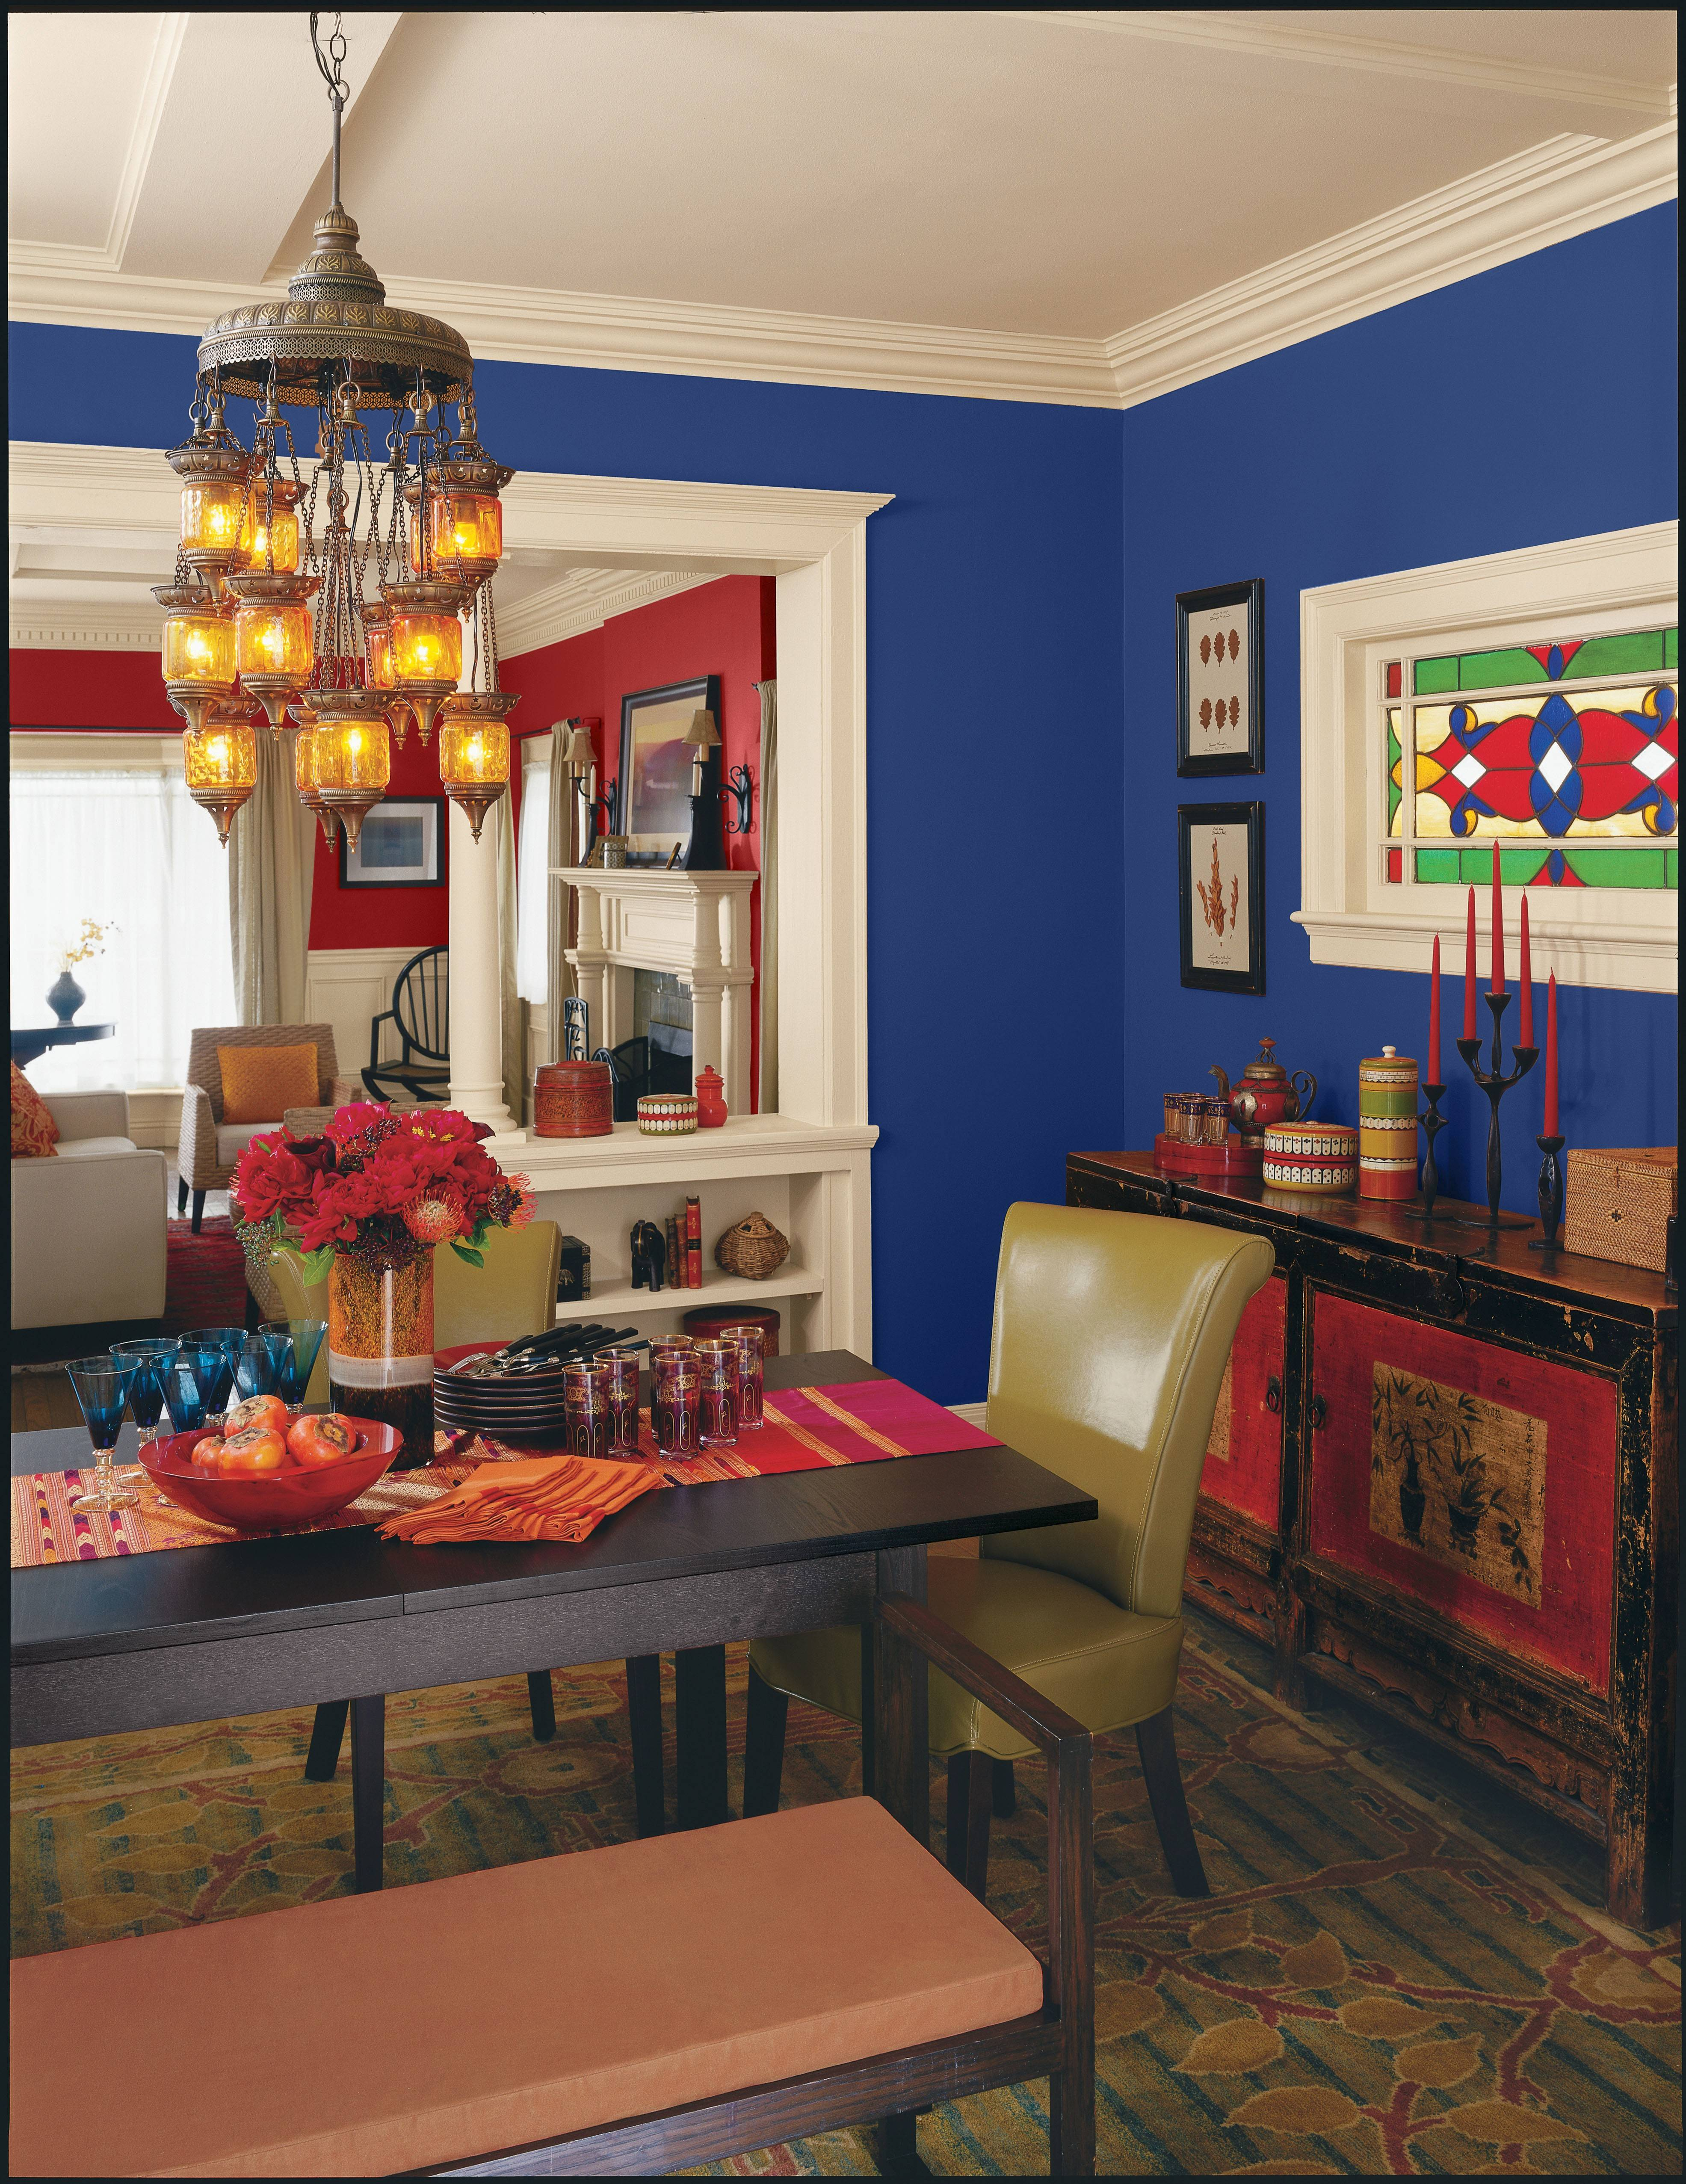 Marsala, a maroonish red color, blends well with other bold colors common in paintings of the Renaissance, like Navy Blue.